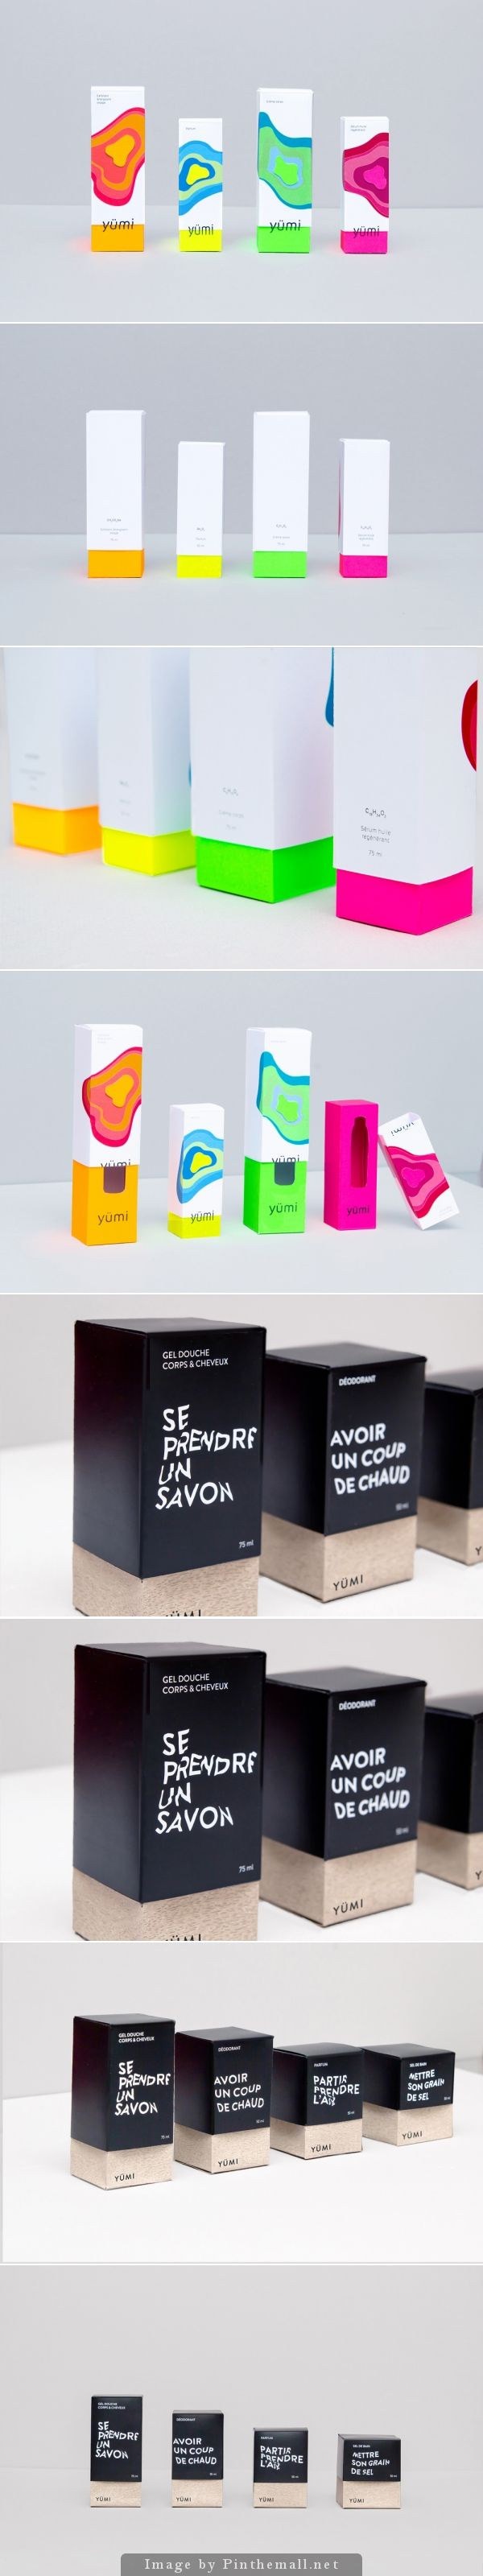 Yümi | unisex cosmetic brand | #packaging #design by Natacha Algani | The Dieline. Popular colors and great graphics PD